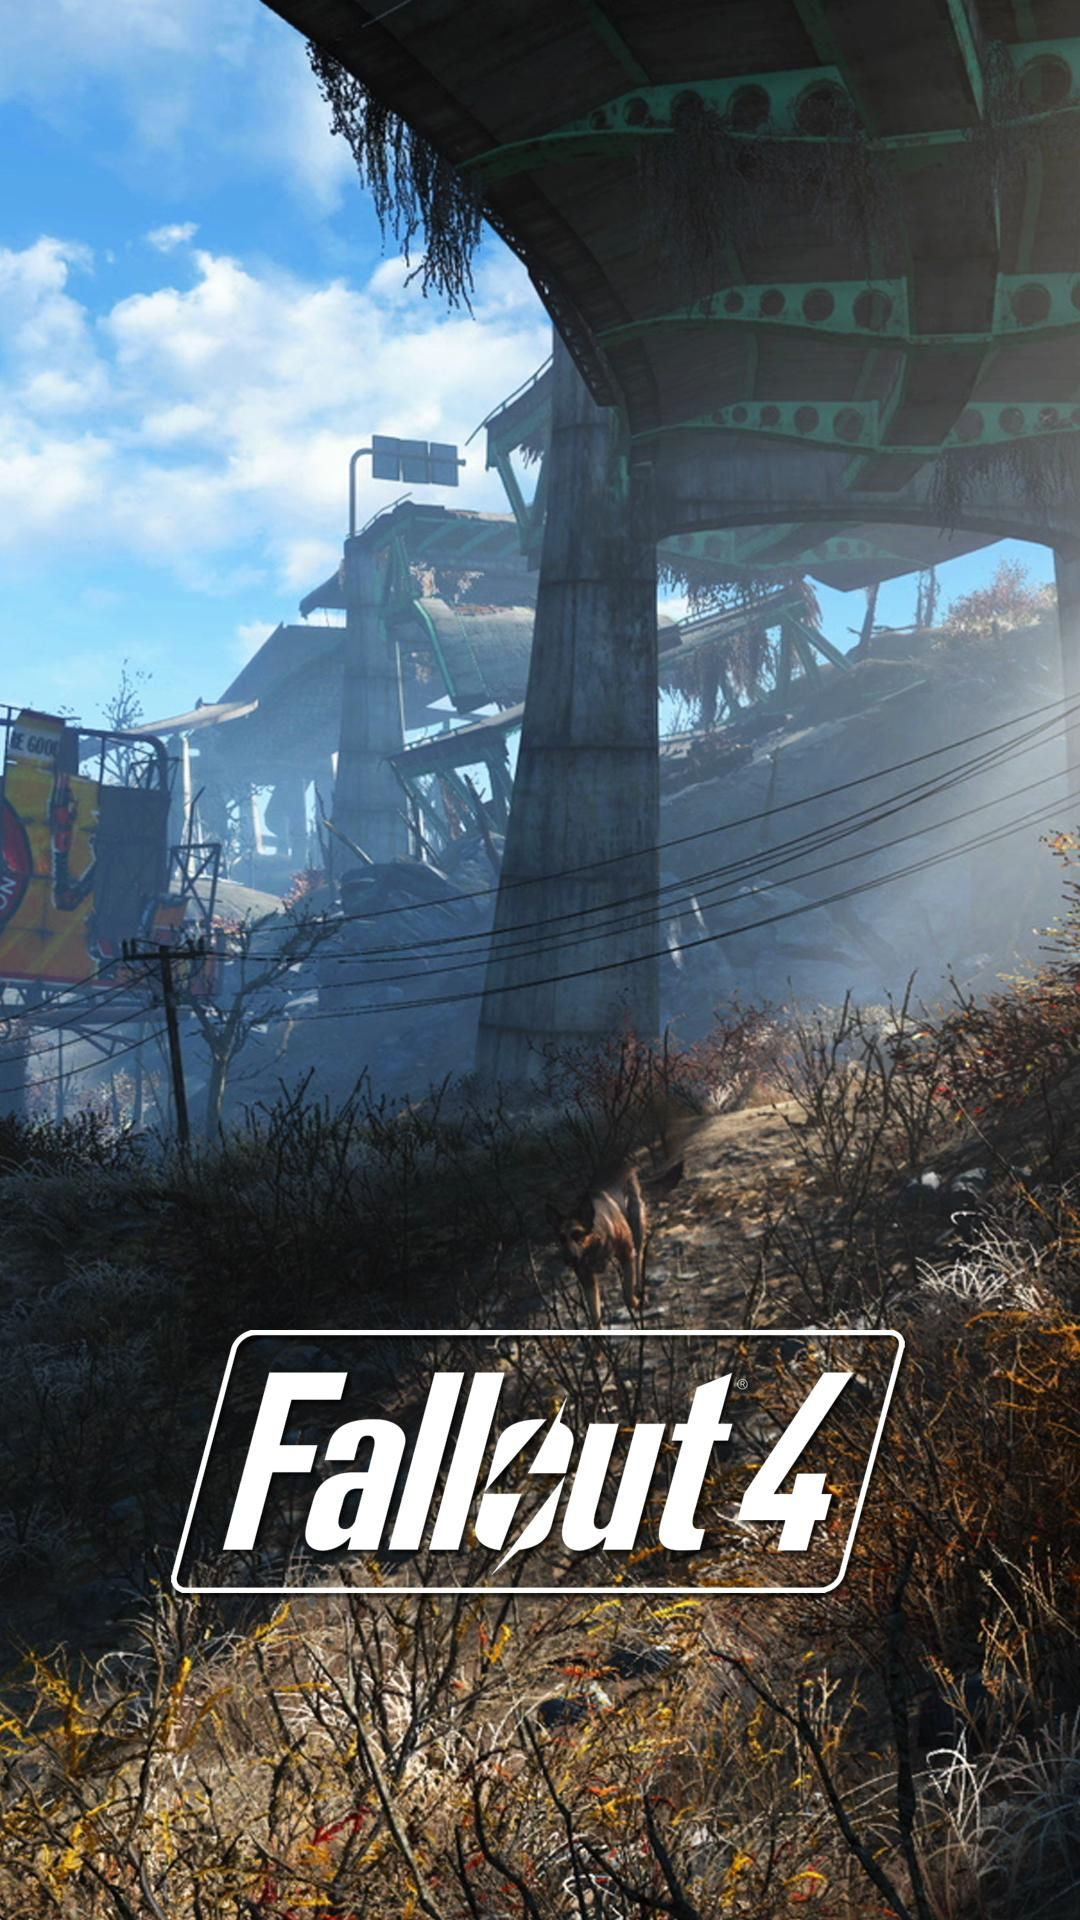 I Made Some Fallout 4 Lock Screen Wallpapers From E3 - Fallout 4k Iphone , HD Wallpaper & Backgrounds